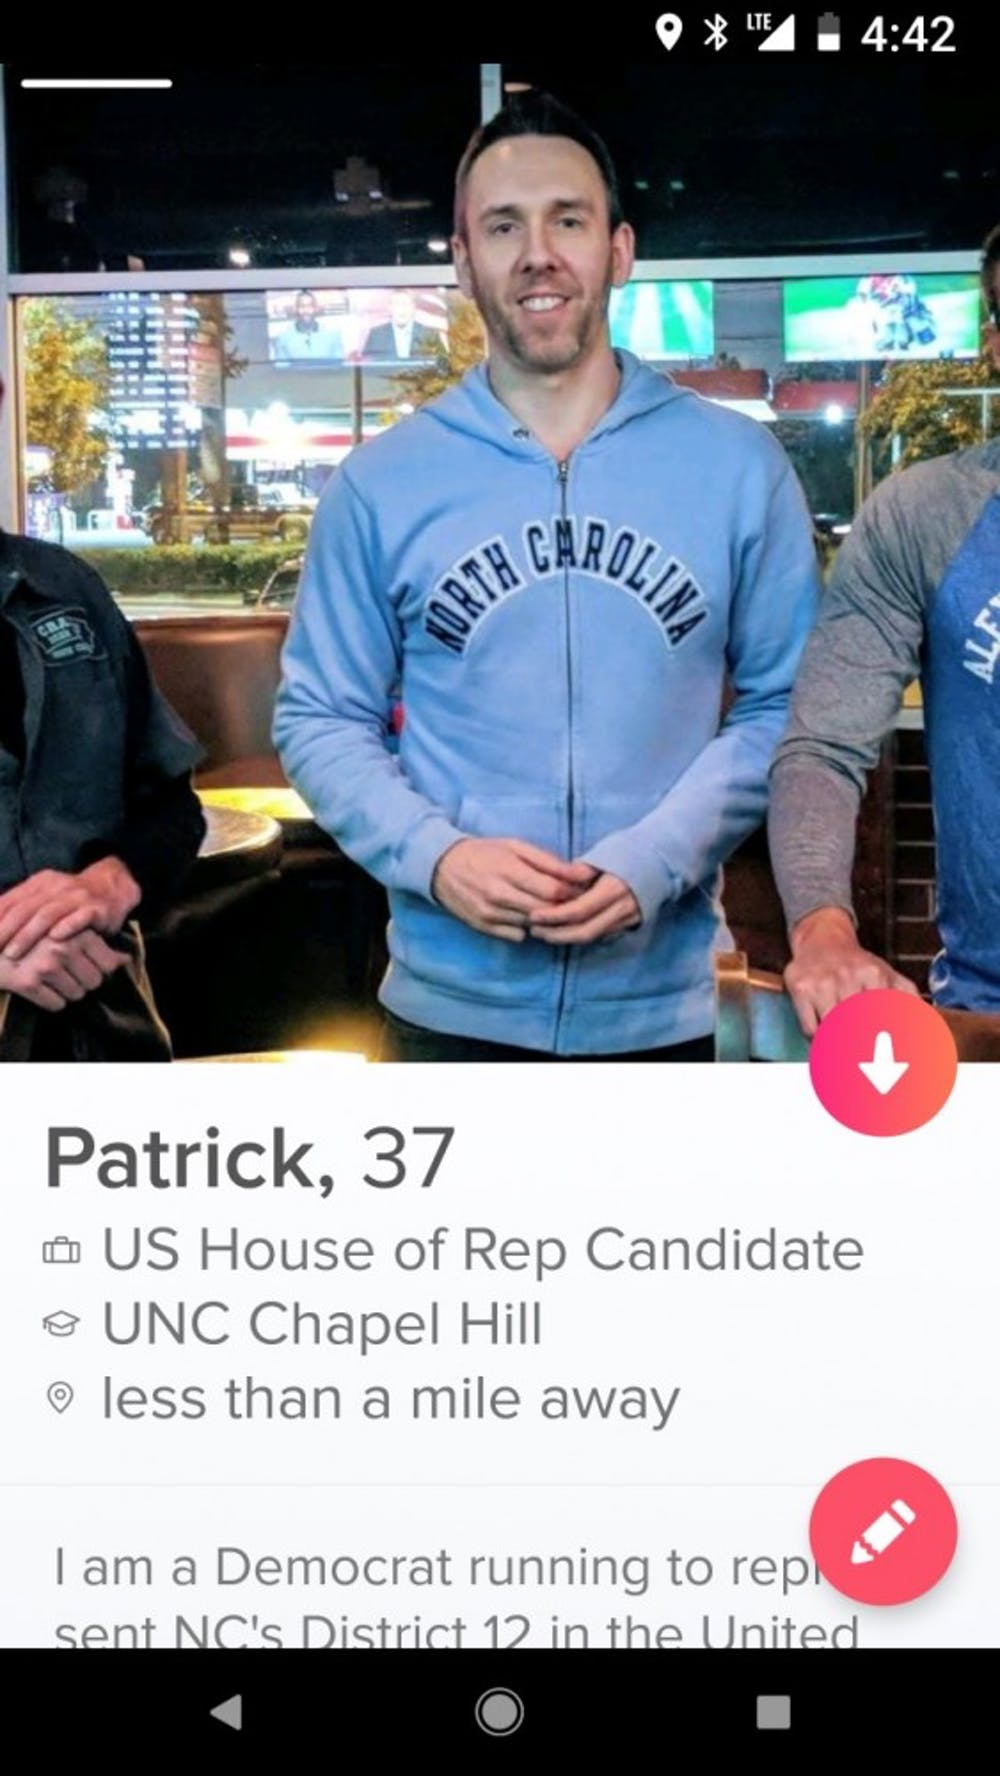 Swiping right on your...representative? Here's one UNC alum's unusual take on voter outreach